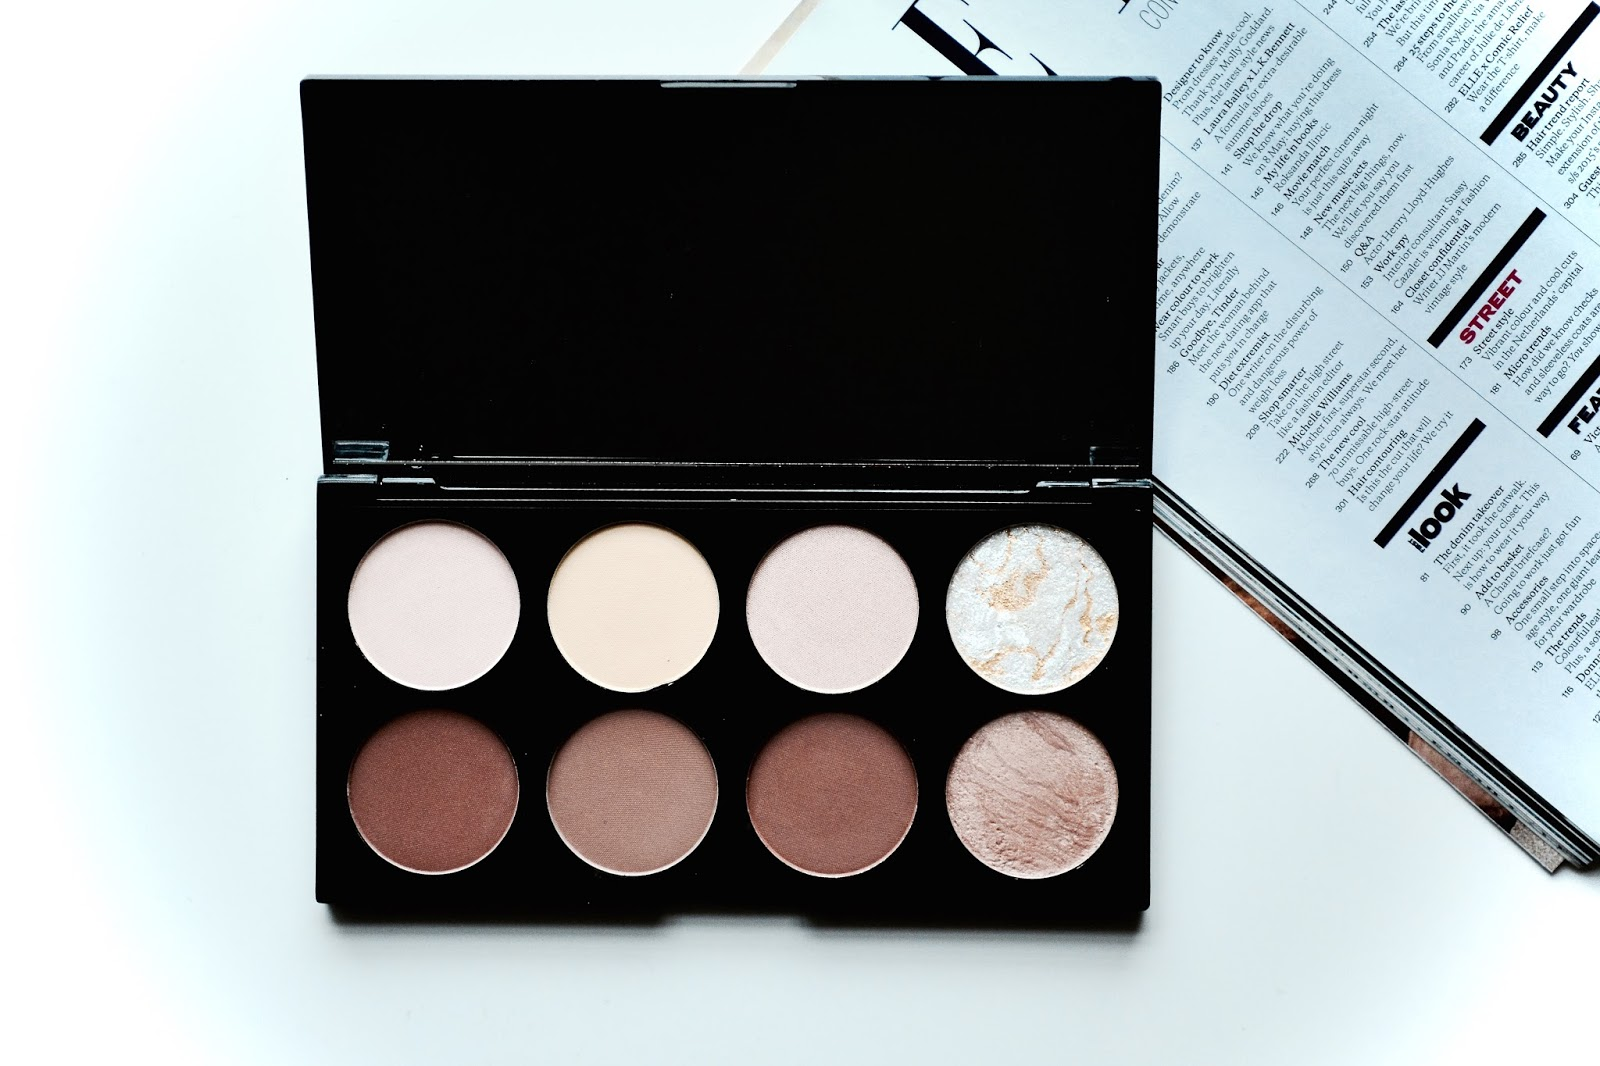 Makeup Revolution, Ultra Contour Kit, Contouring, Highlighting, Makeup Revolution Ultra Contour Palette. Makeup, Beauty, Powder, Mac, Dupe